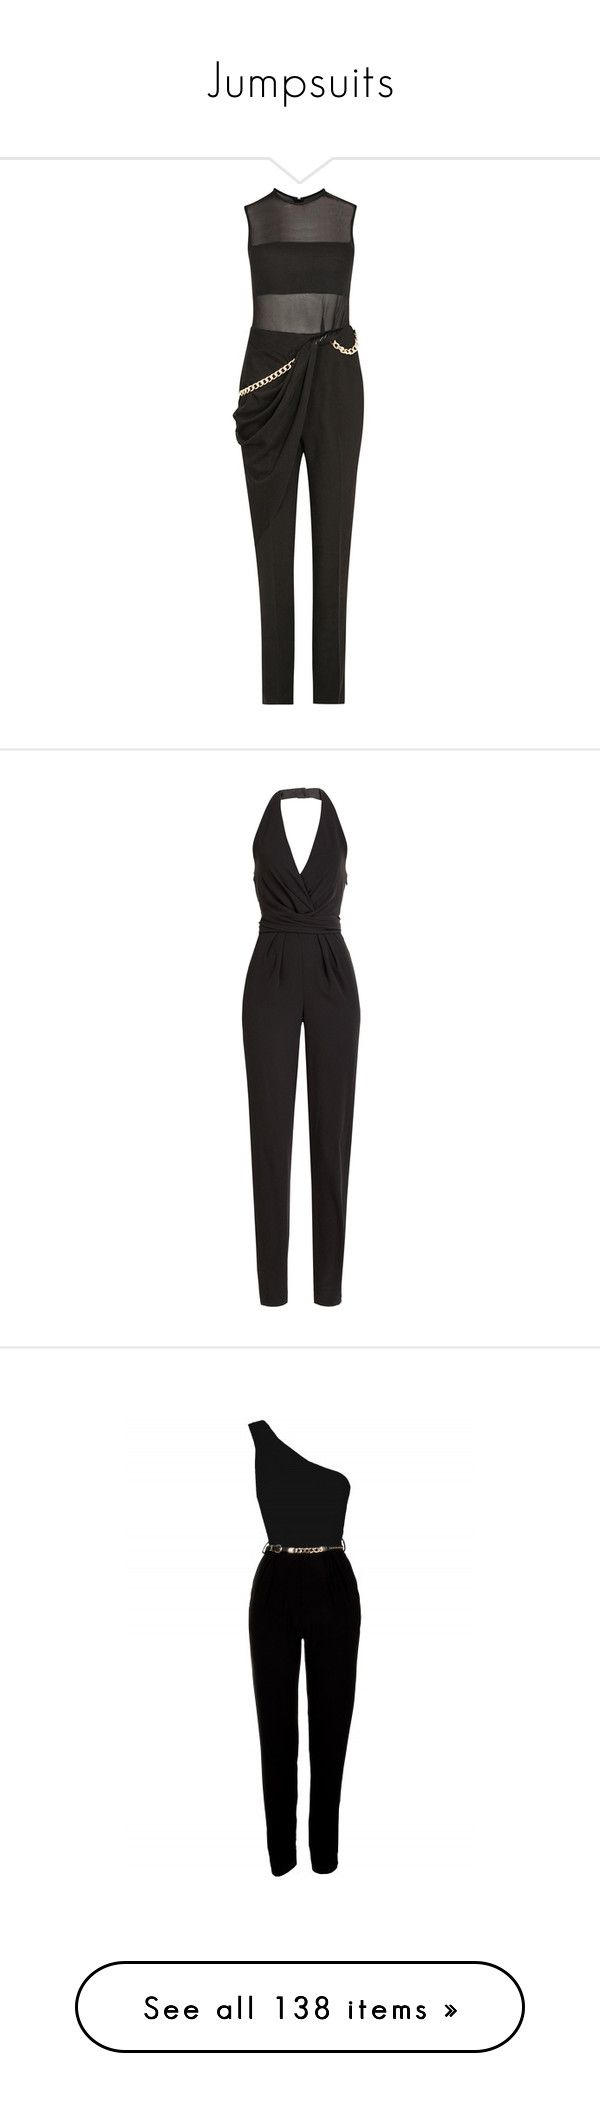 """""""Jumpsuits"""" by the-wanted-potato ❤ liked on Polyvore featuring jumpsuits, bandeau jumpsuit, draped jumpsuit, jump suit, embellished jumpsuit, crepe jumpsuit, jumpsuit, dresses, rompers and playsuits"""